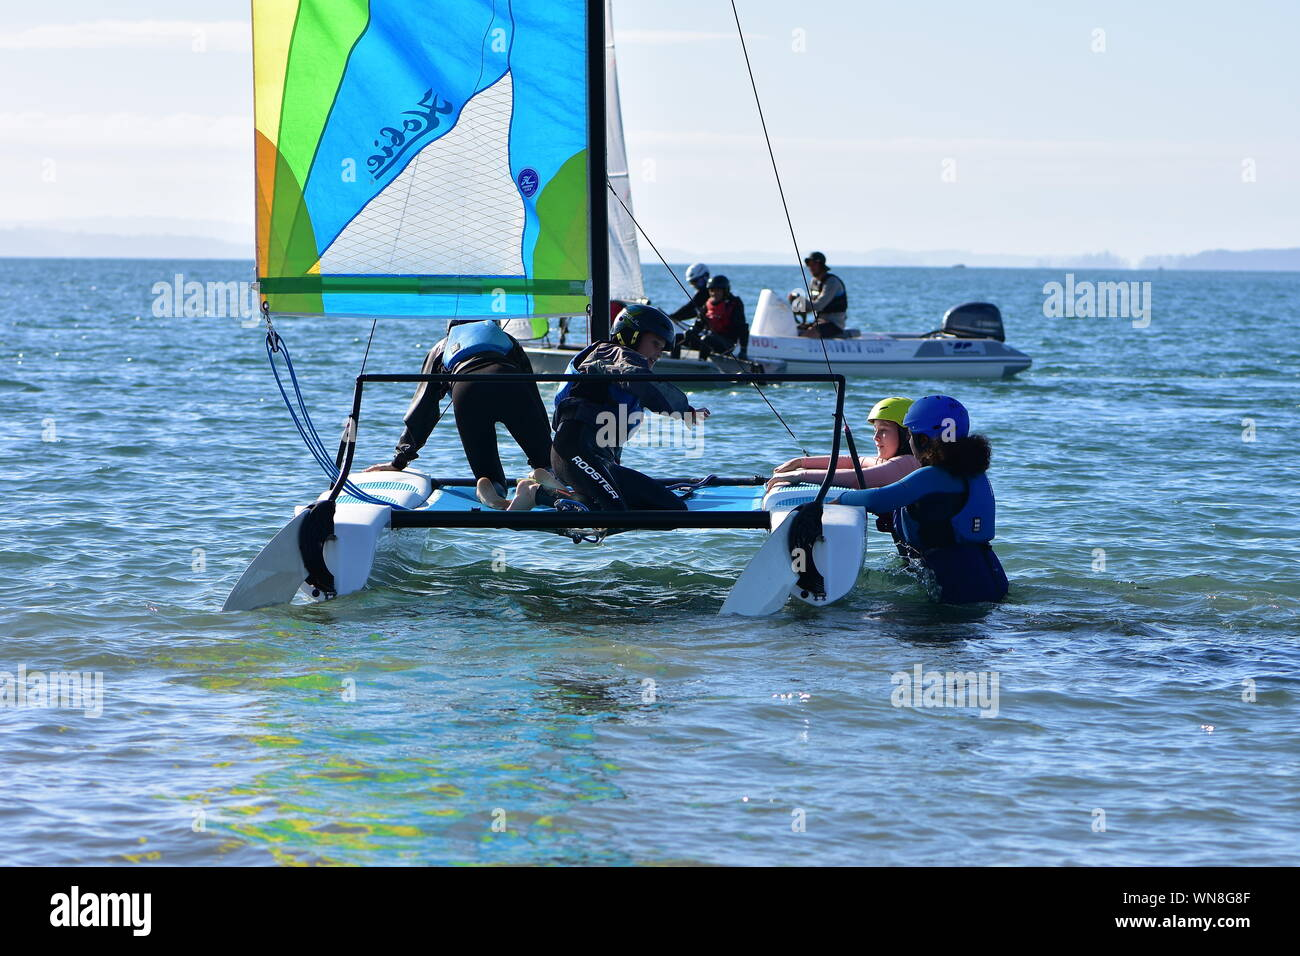 Crew of young girls boarding their racing sailing catamaran for training in shallow bay. Stock Photo